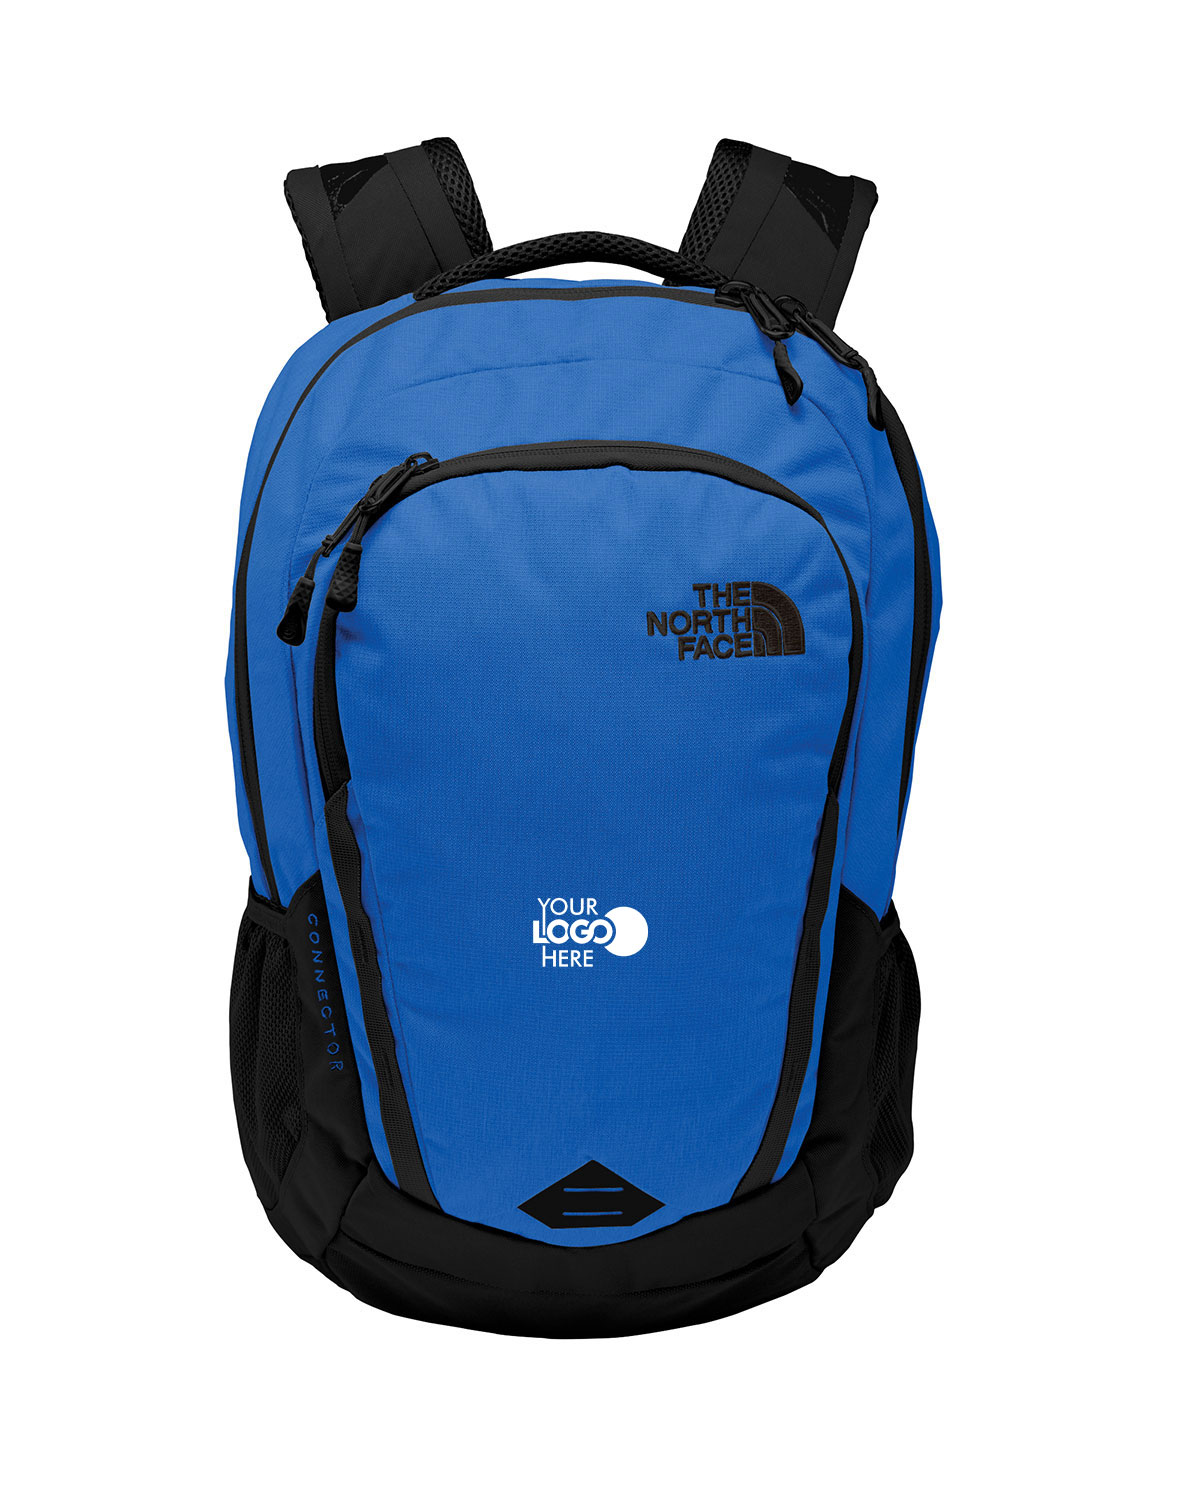 The North Face NF0A3KX8 Connector Backpack